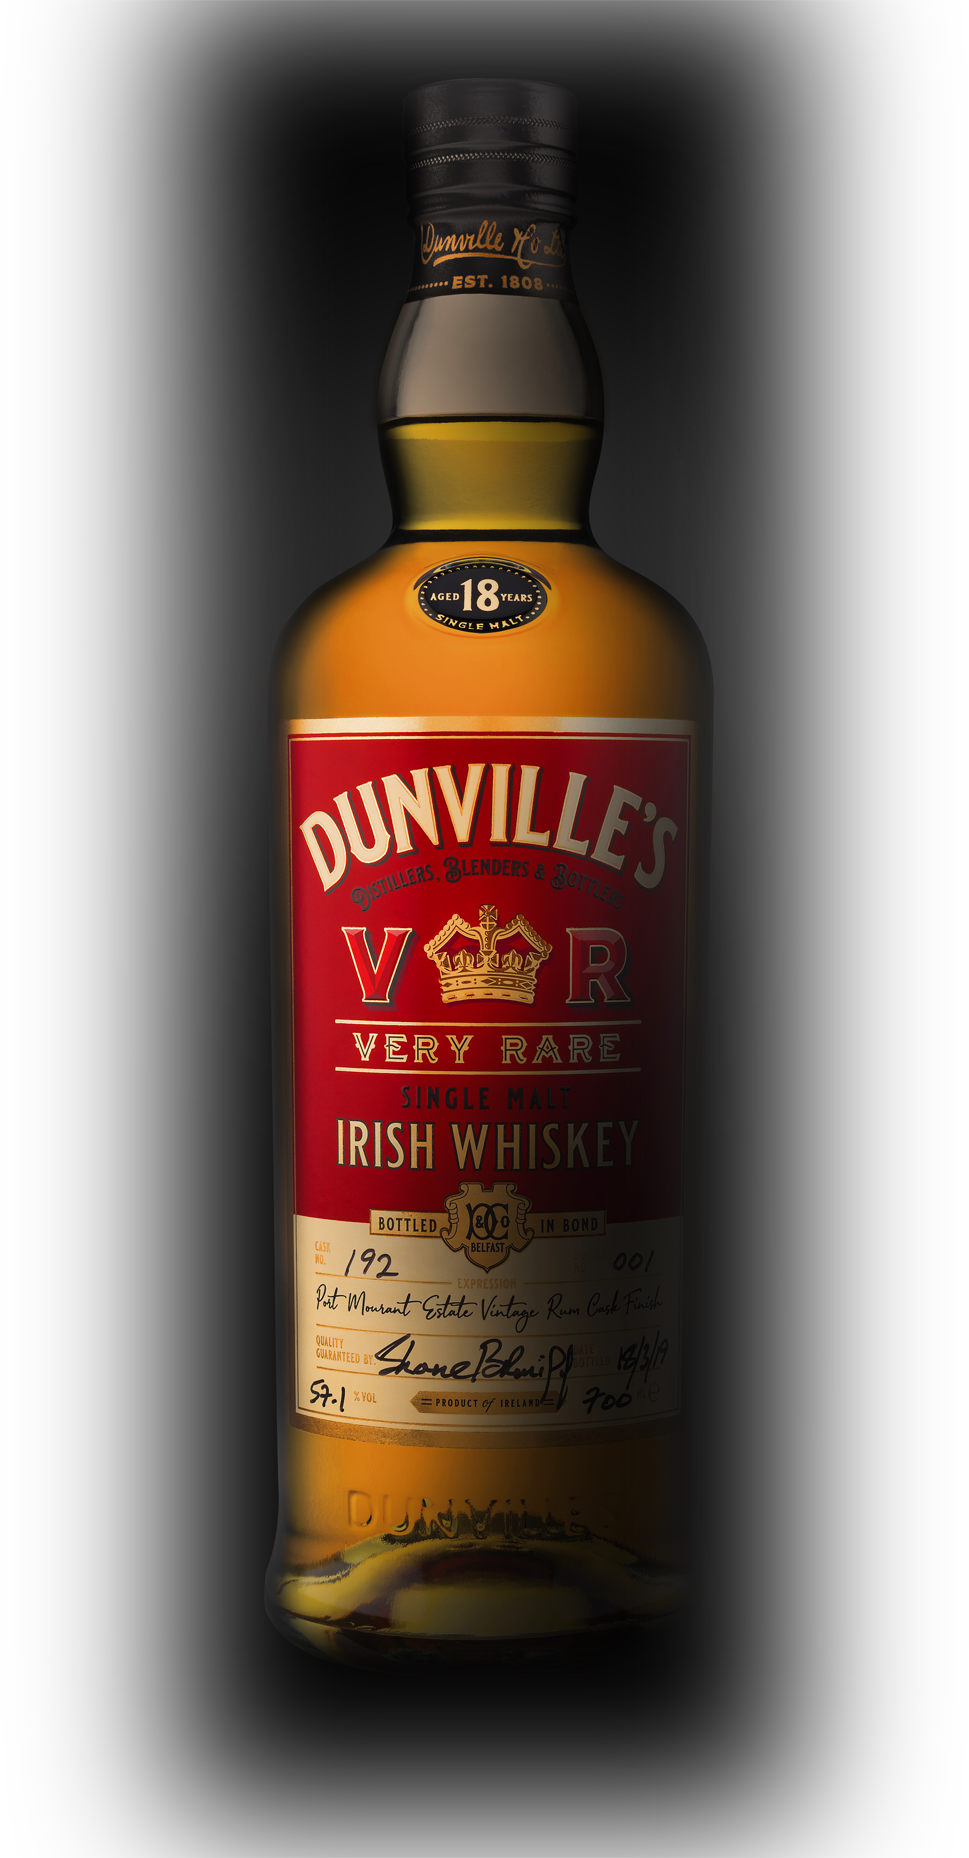 Dunville's VR 18 Year Old Rum Finish Single Malt Irish Whiskey bottle